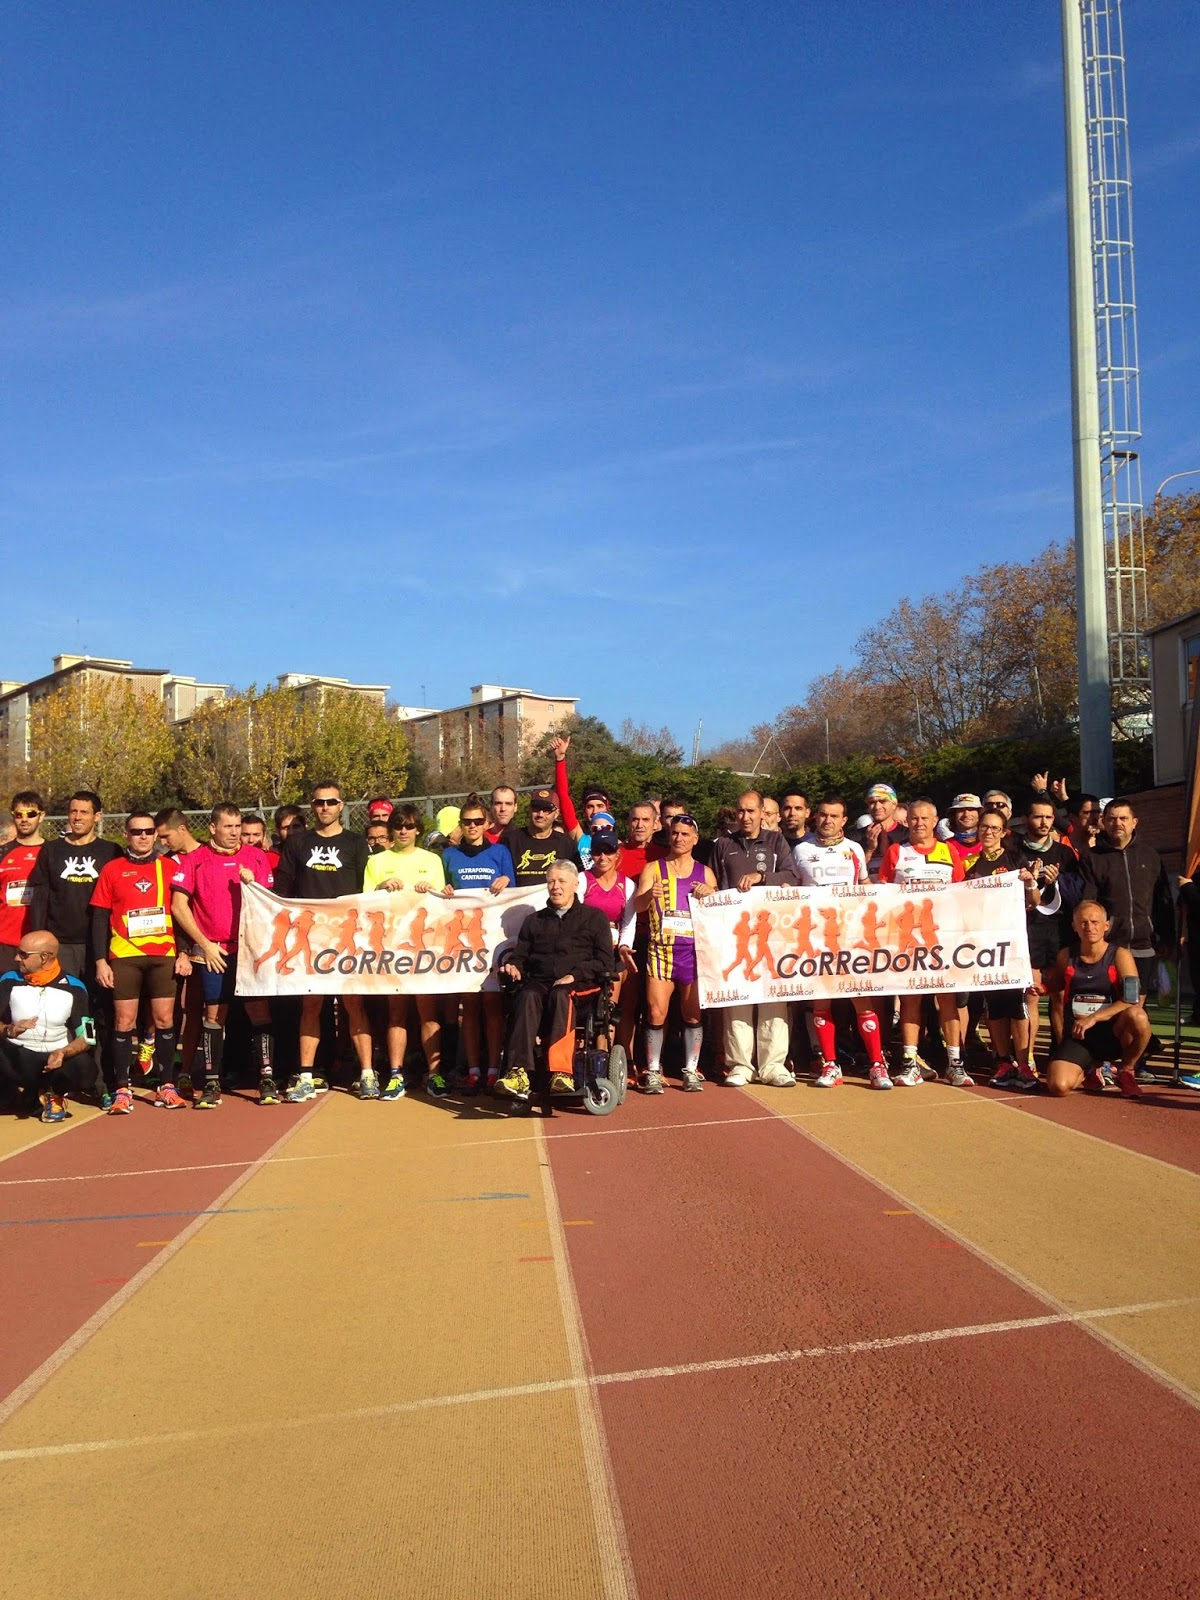 24 horas atletismo can drago barcelona pitufollow foto